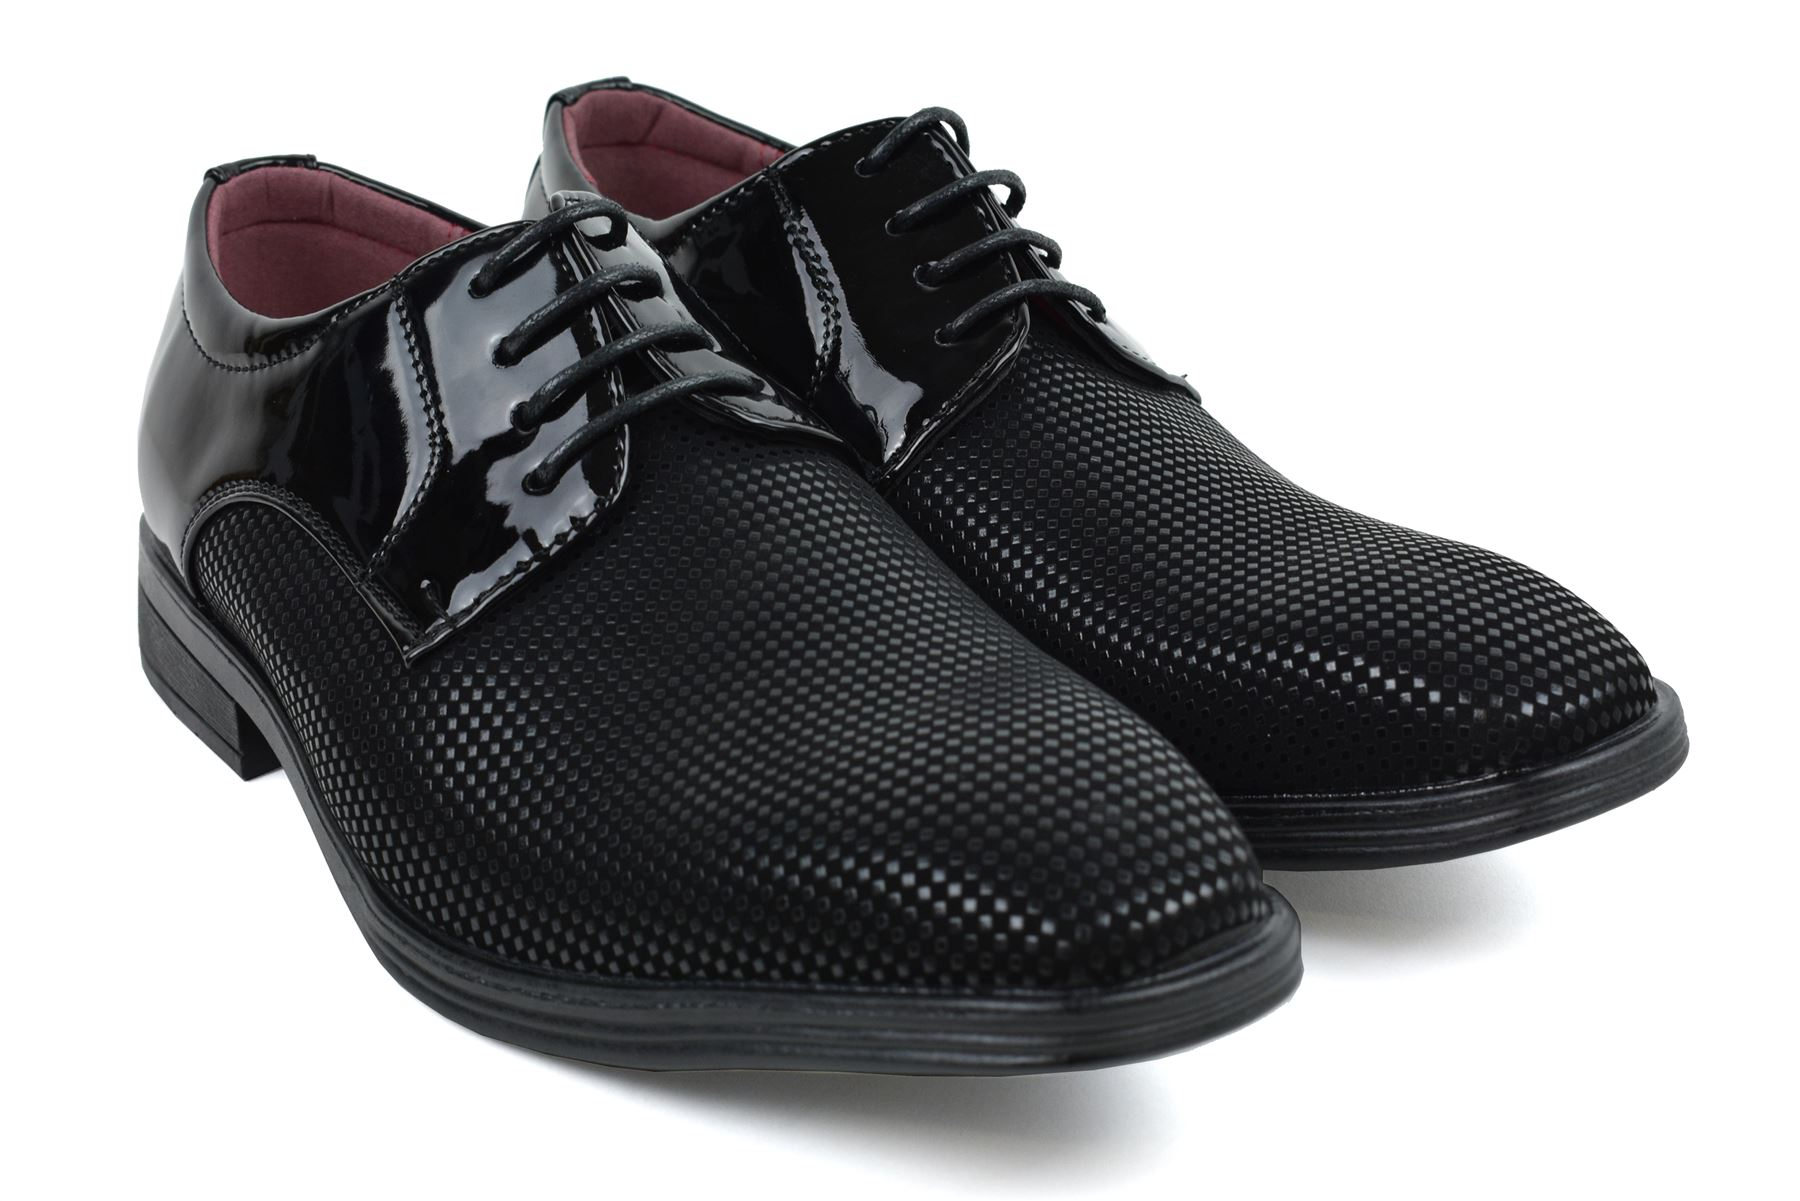 Mens-UK-Style-Leather-Lining-Formal-Office-Wedding-Smart-Work-Brogue-Shoes thumbnail 91